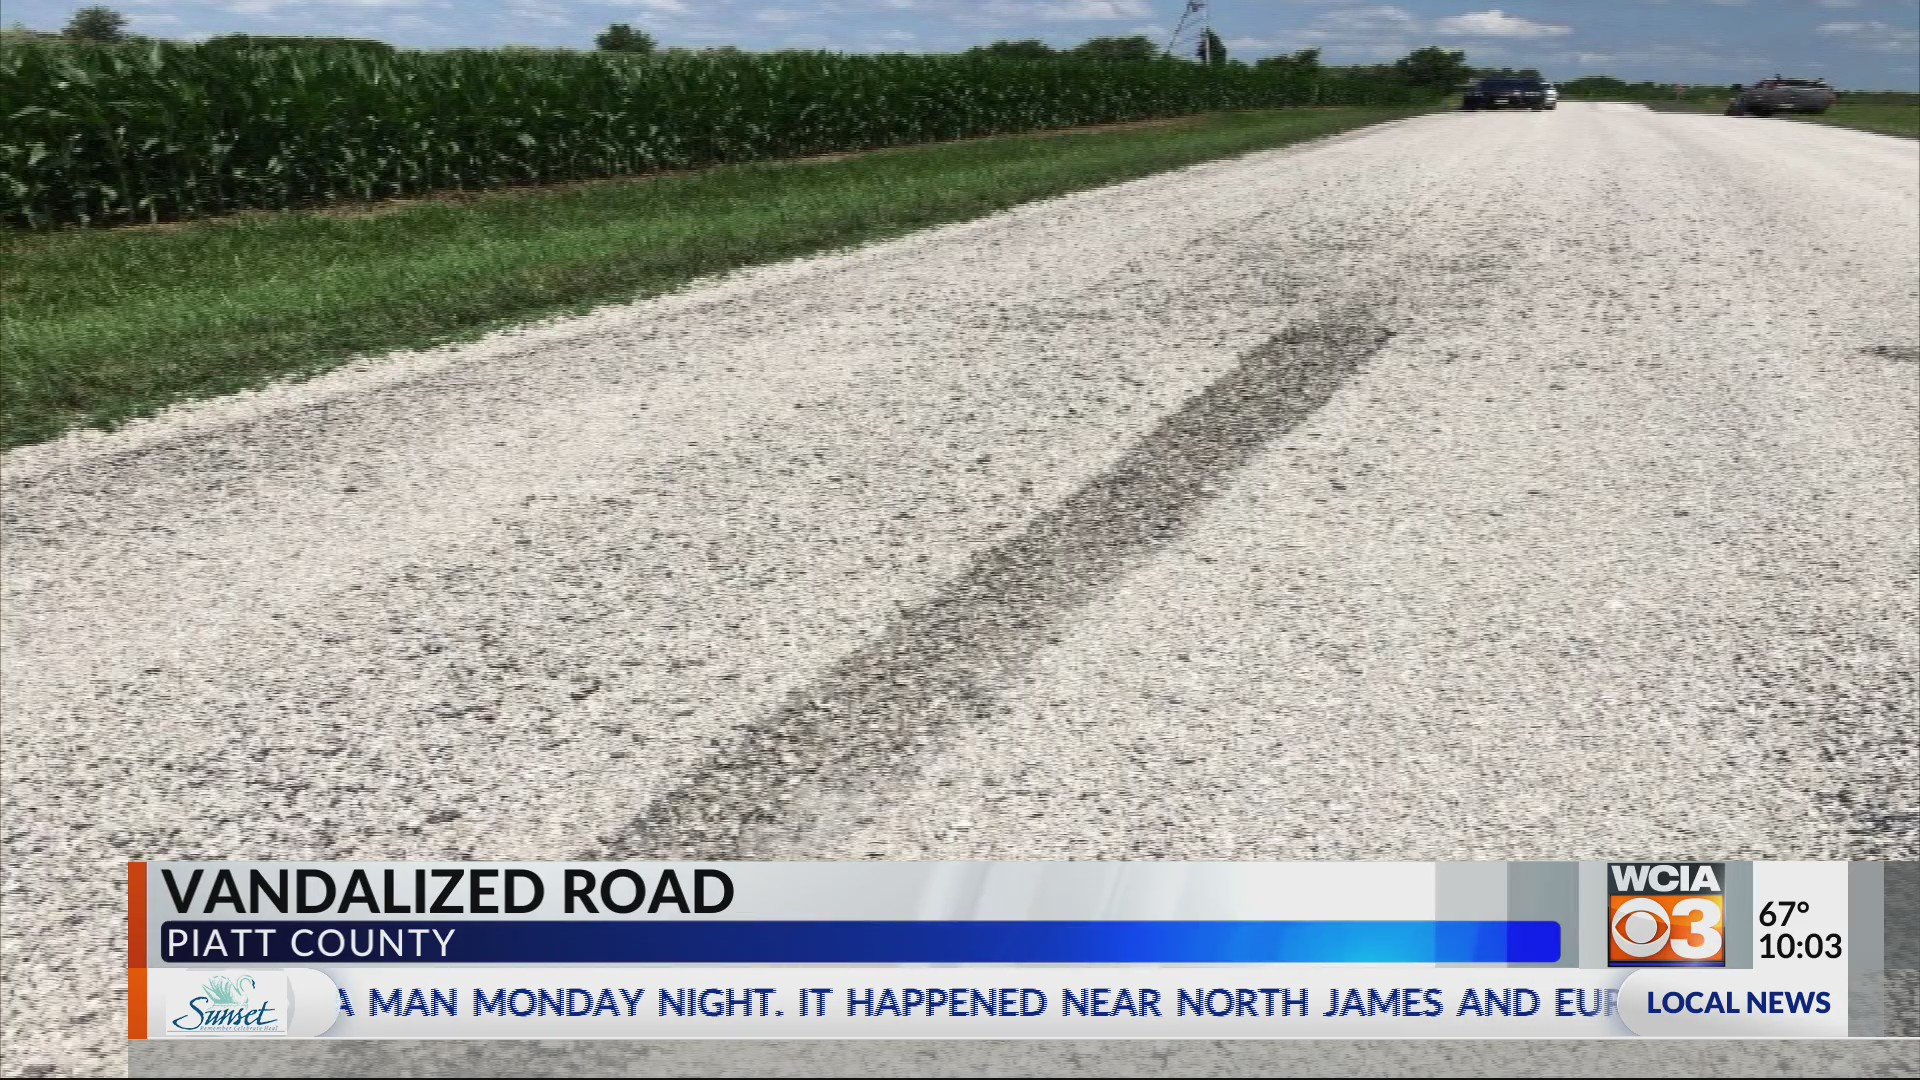 Road vandalized right after repair   WCIA com